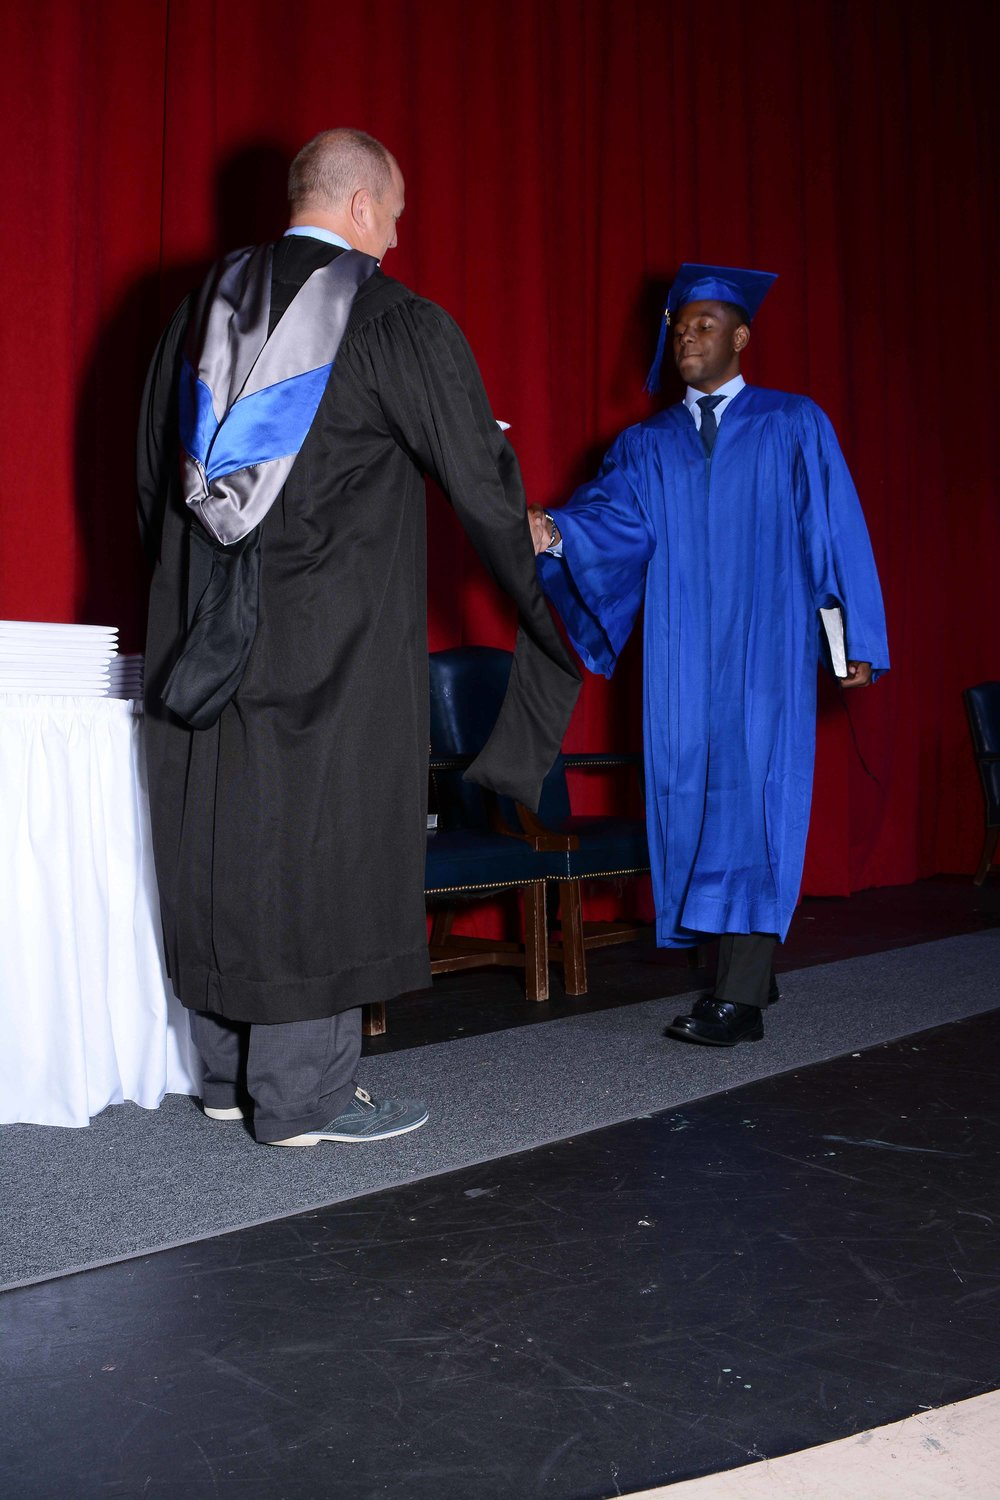 May14 Commencement86.jpg